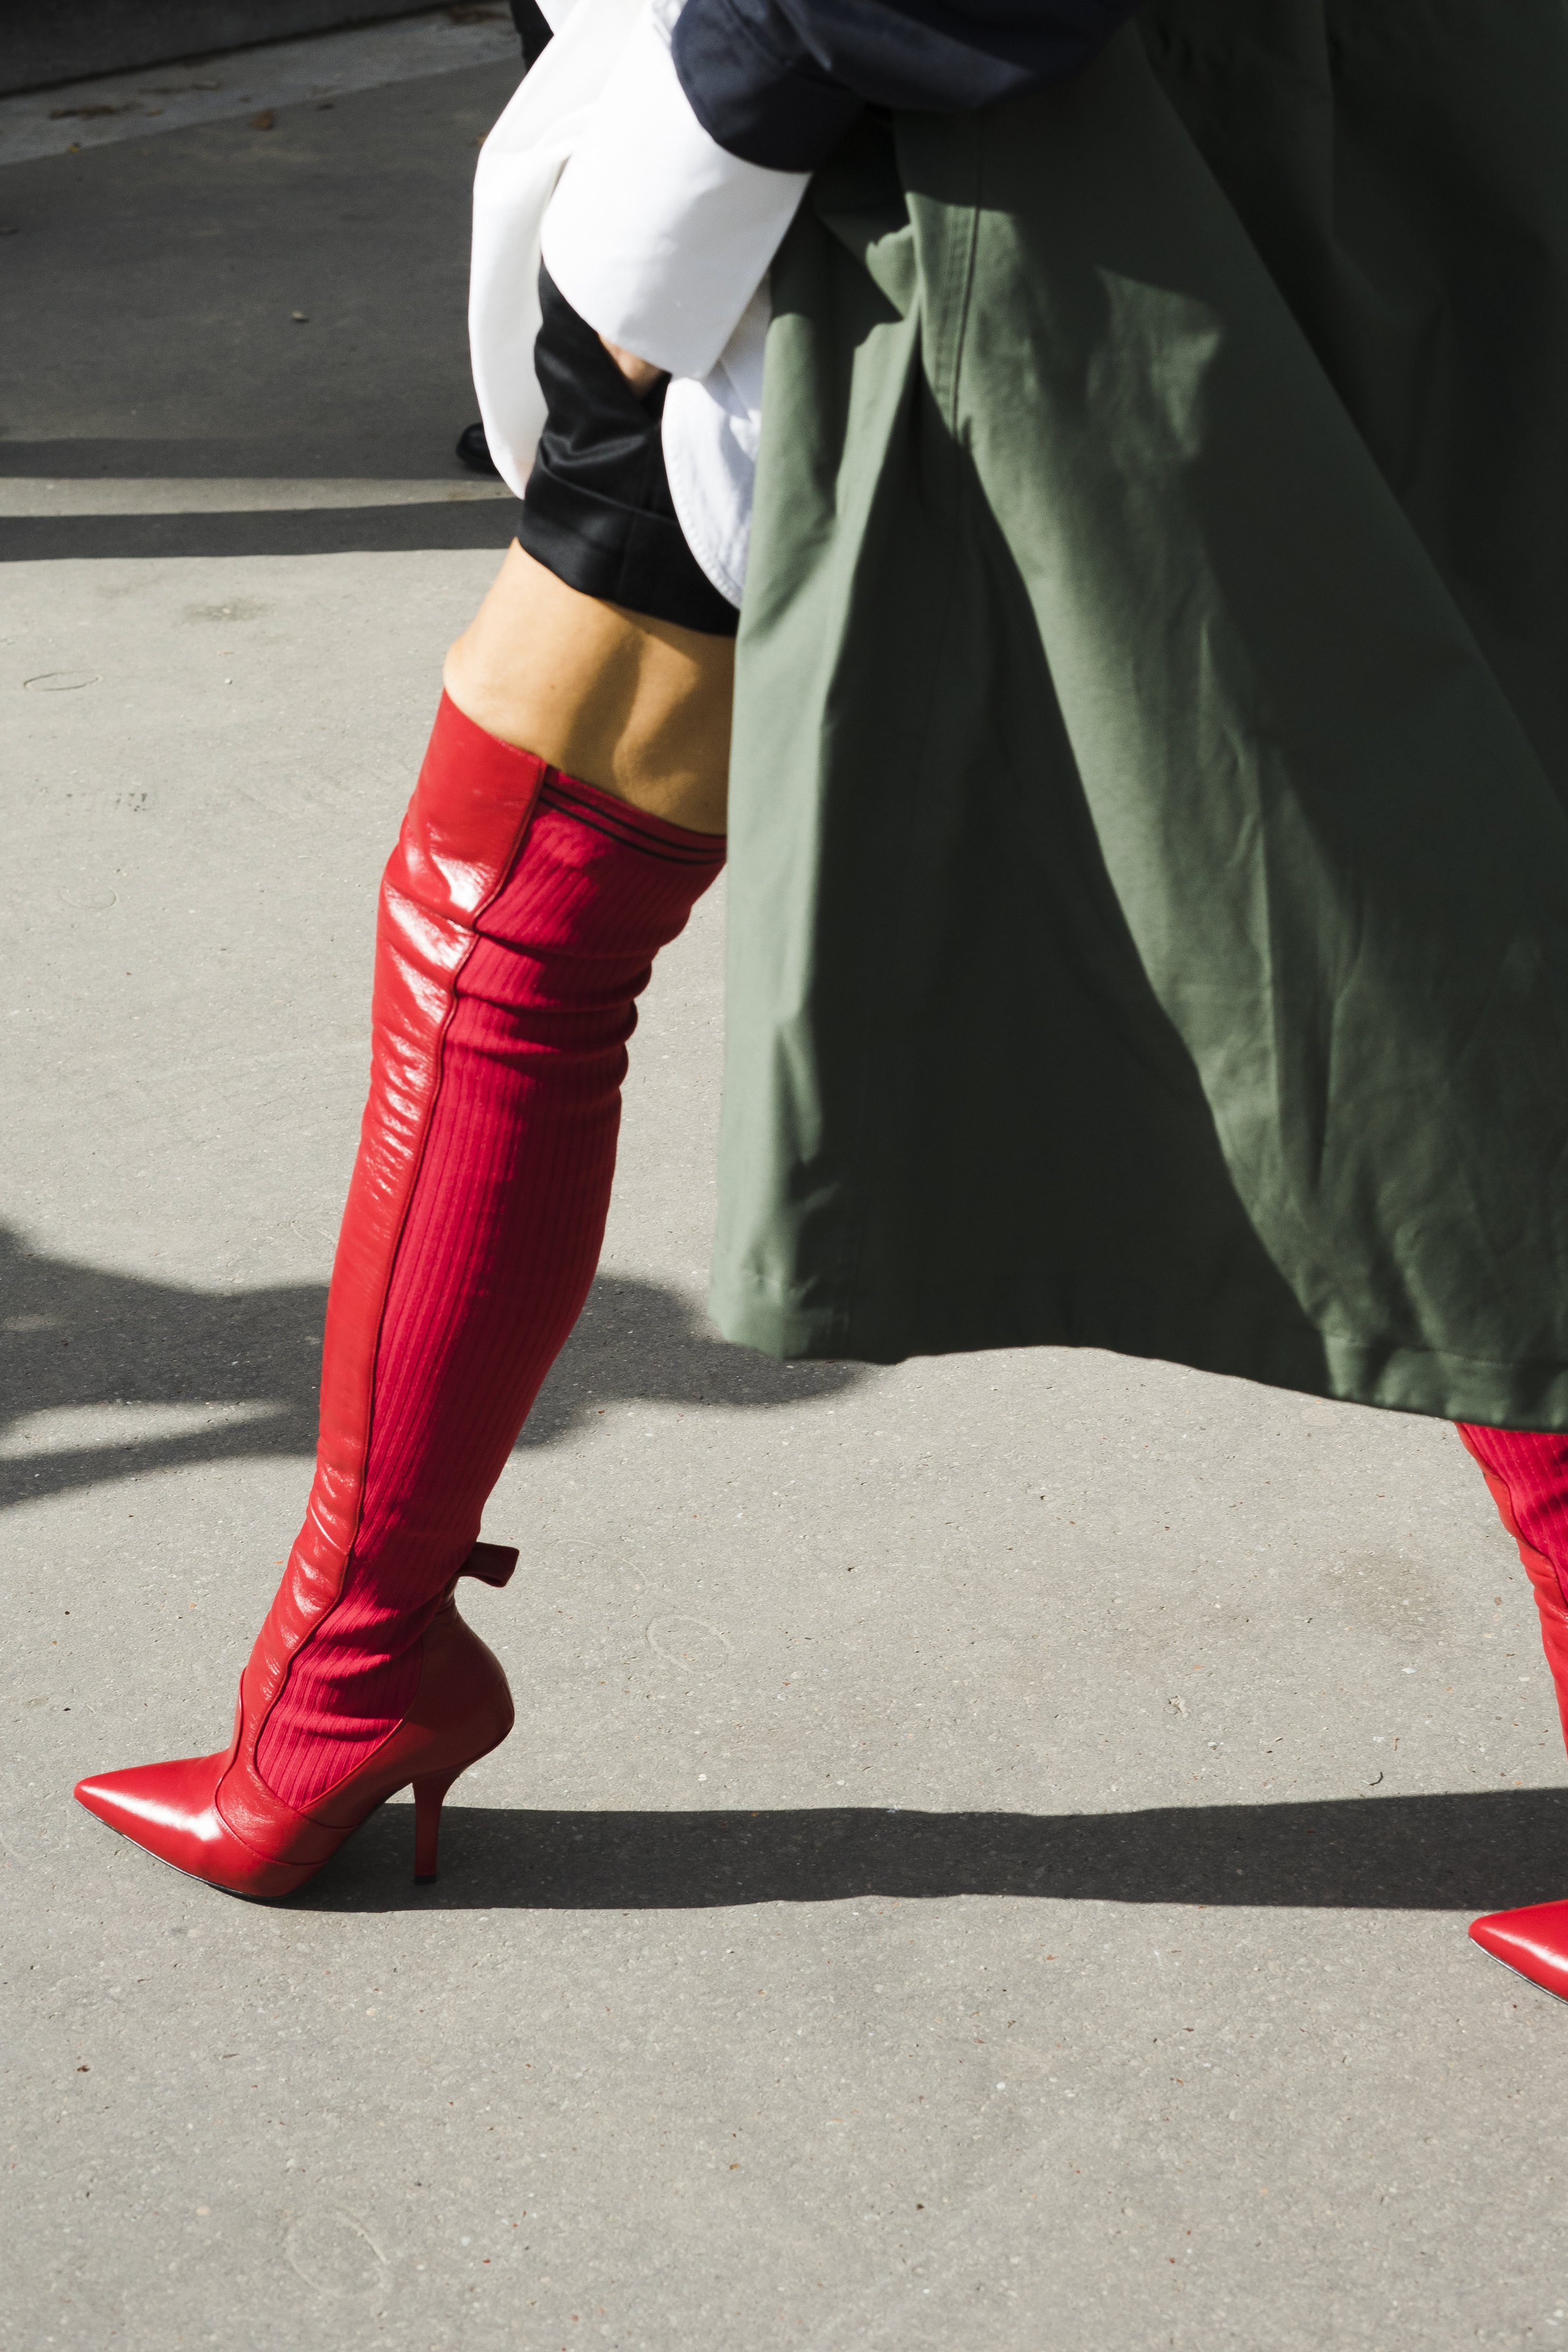 September 30, 2017 - Paris, Ile de France, France - Accessory detail during Paris Fashion Week Womenswear Spring/Summer 2018 on September 29, 2017 in Paris, France., Image: 351198220, License: Rights-managed, Restrictions: * France Rights OUT *, Model Release: no, Credit line: Profimedia, Zuma Press - Entertaiment